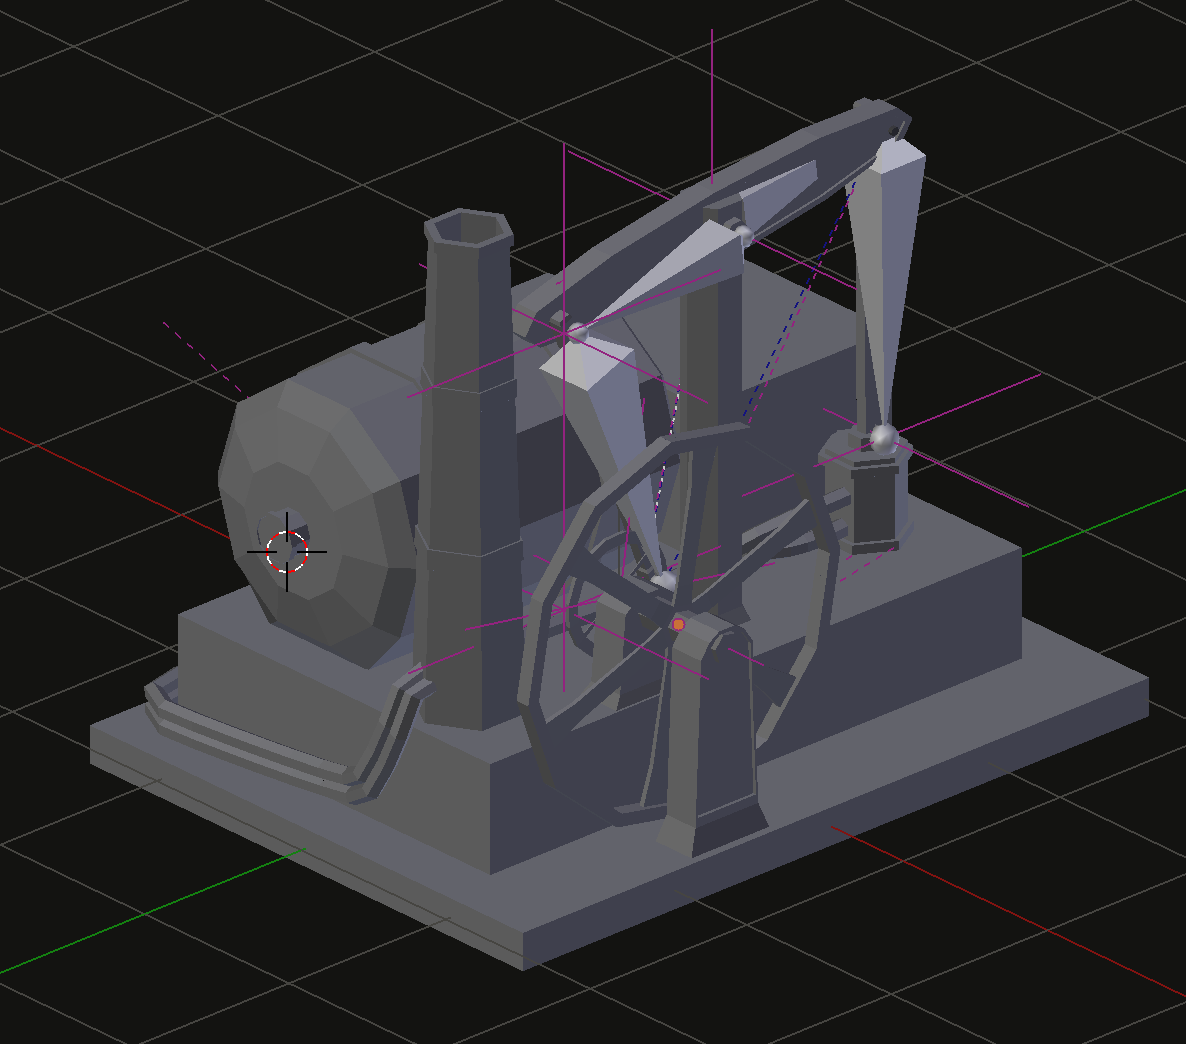 A view of the rig in Blender.